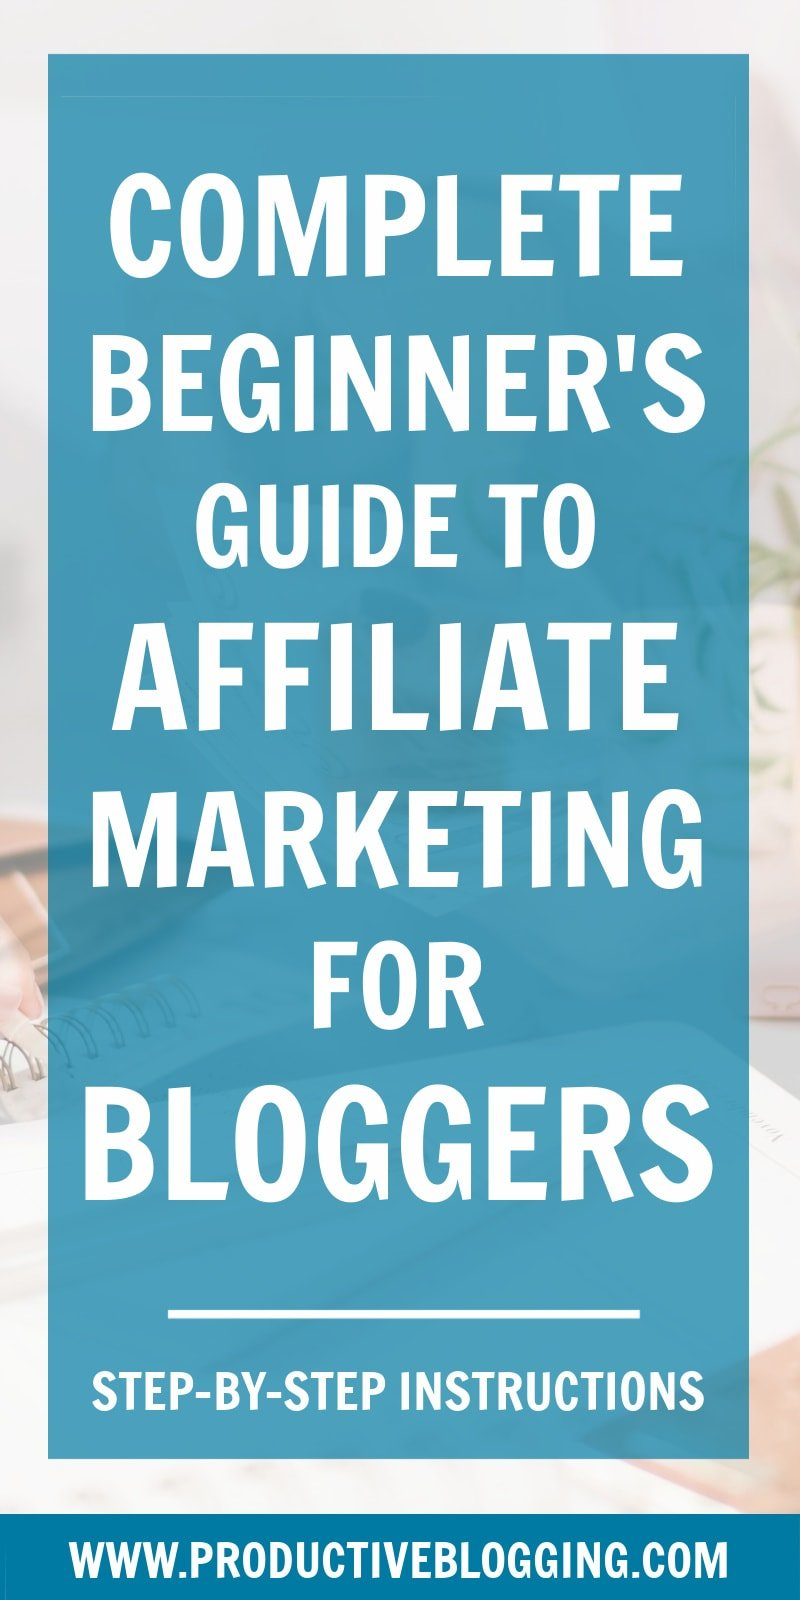 Affiliate marketing is a great way for bloggers to earn money. But what exactly is affiliate marketing? And how do you actually DO it? Find out in this beginner's guide to affiliate marketing for bloggers. #affiliatemarketing #affiliatelinks #affiliateprogram #makemoneyblogging #monetizeyourblog #passiveincome #passiveincomeblogging #blogginglife #professionalblogger #bloggingismyjob #solopreneur #mompreneur #fempreneur #bloggingbiz #bloggingtips #blogsmarternotharder #productiveblogging